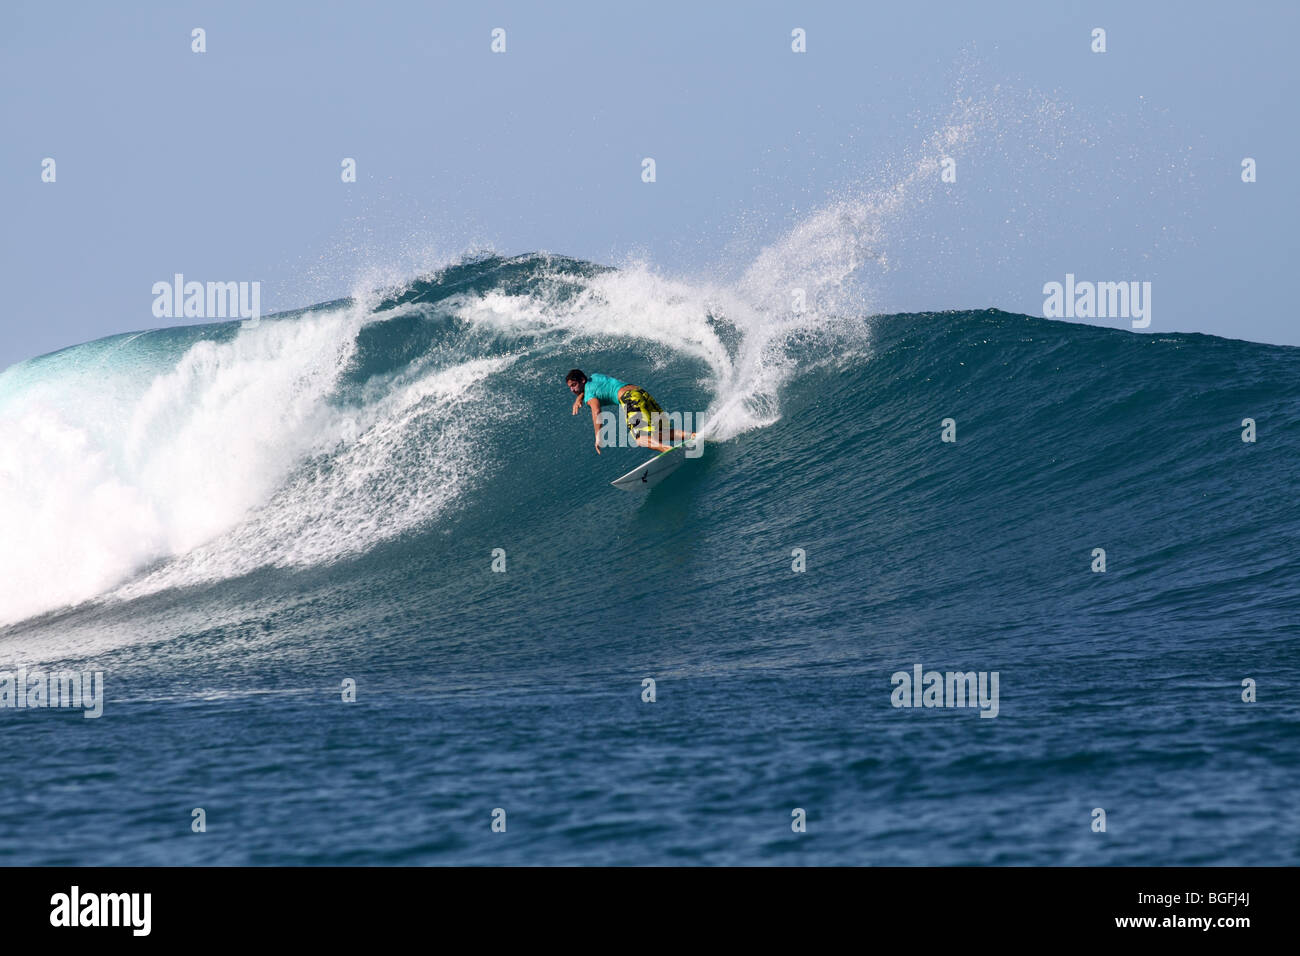 Man surfing in the Mentawai Islands off Sumatra, Indonesia - Stock Image